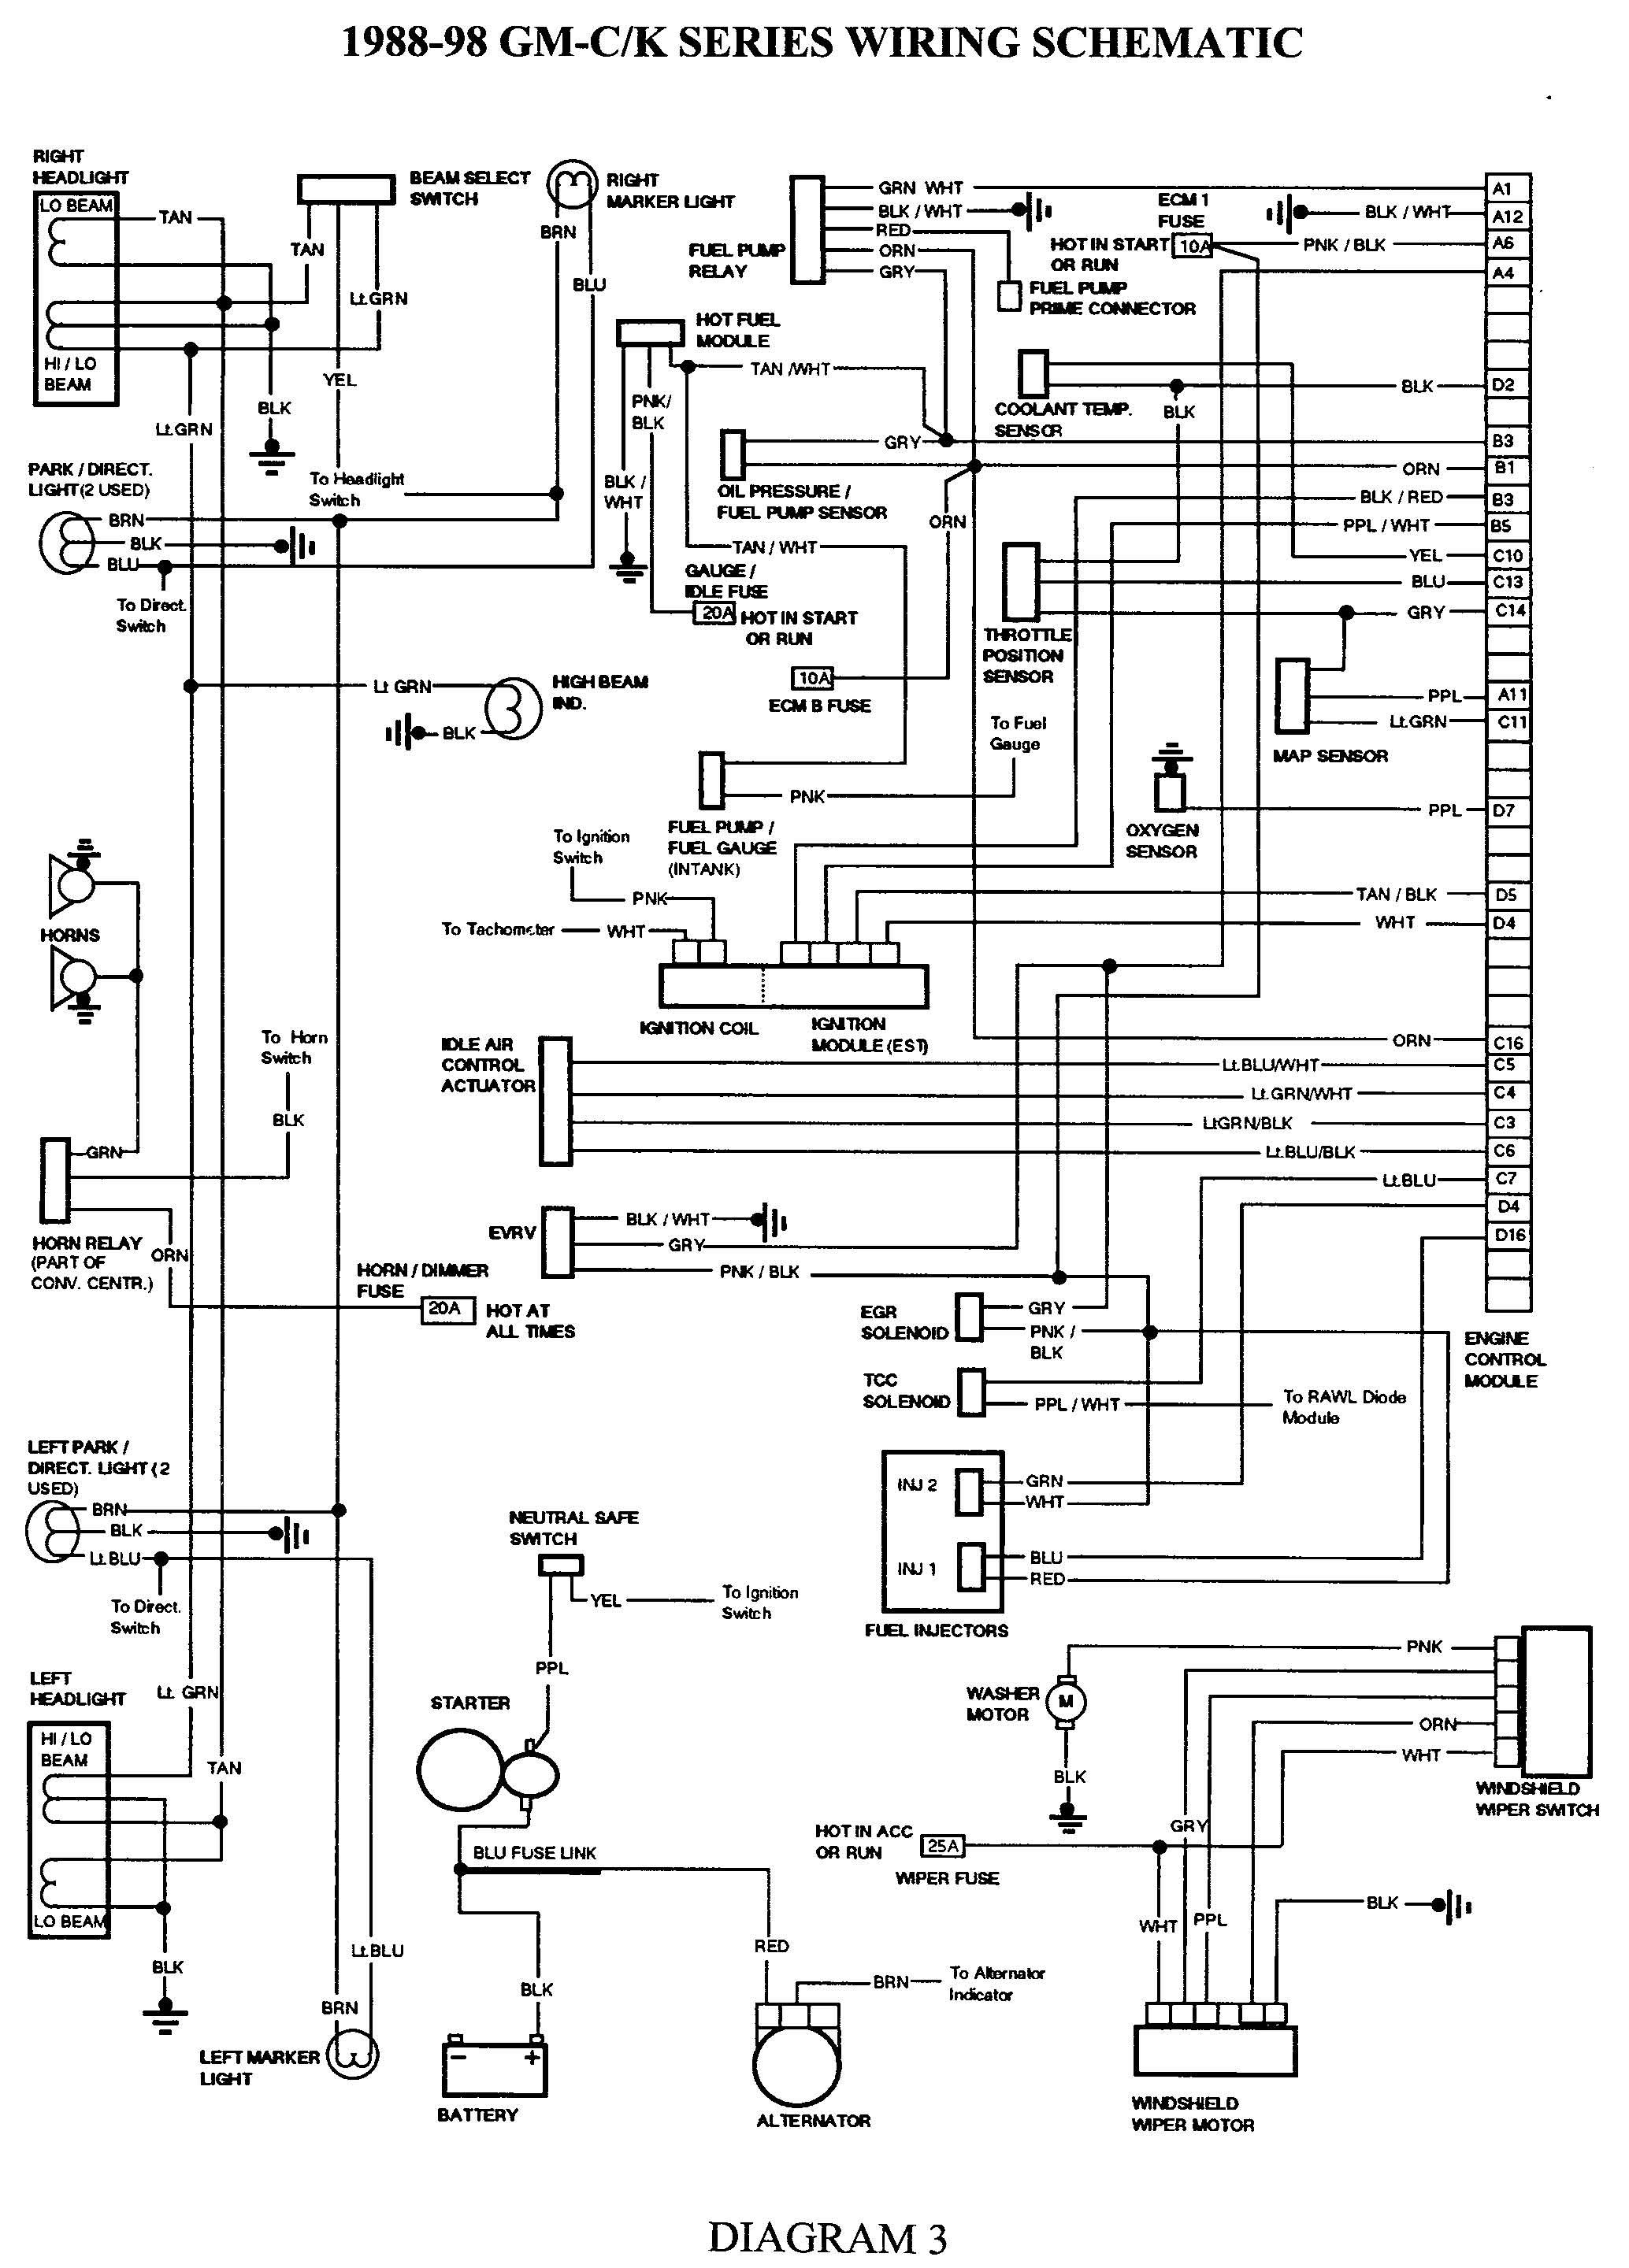 chevy luv wiring tail light data wiring diagramwrg 1822 1978 gmc brigadier fuse panel diagram [ 2068 x 2880 Pixel ]